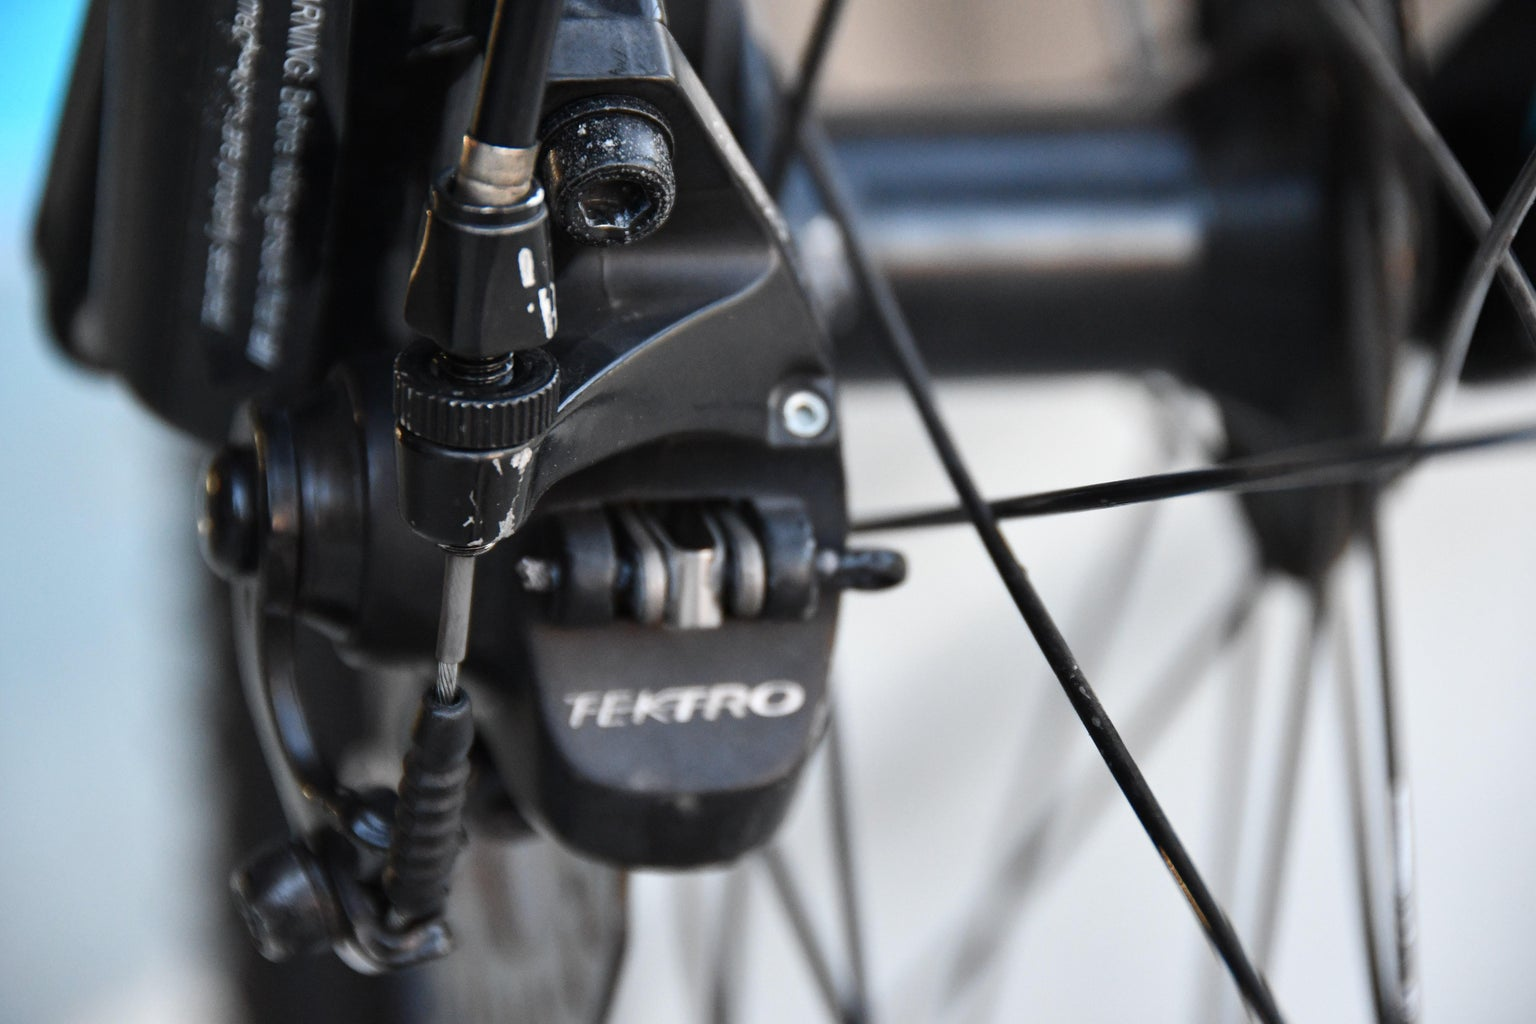 Mechanical Disc Brakes (Skip to Step 4 for V-brakes or Step 3 for Hydraulic)